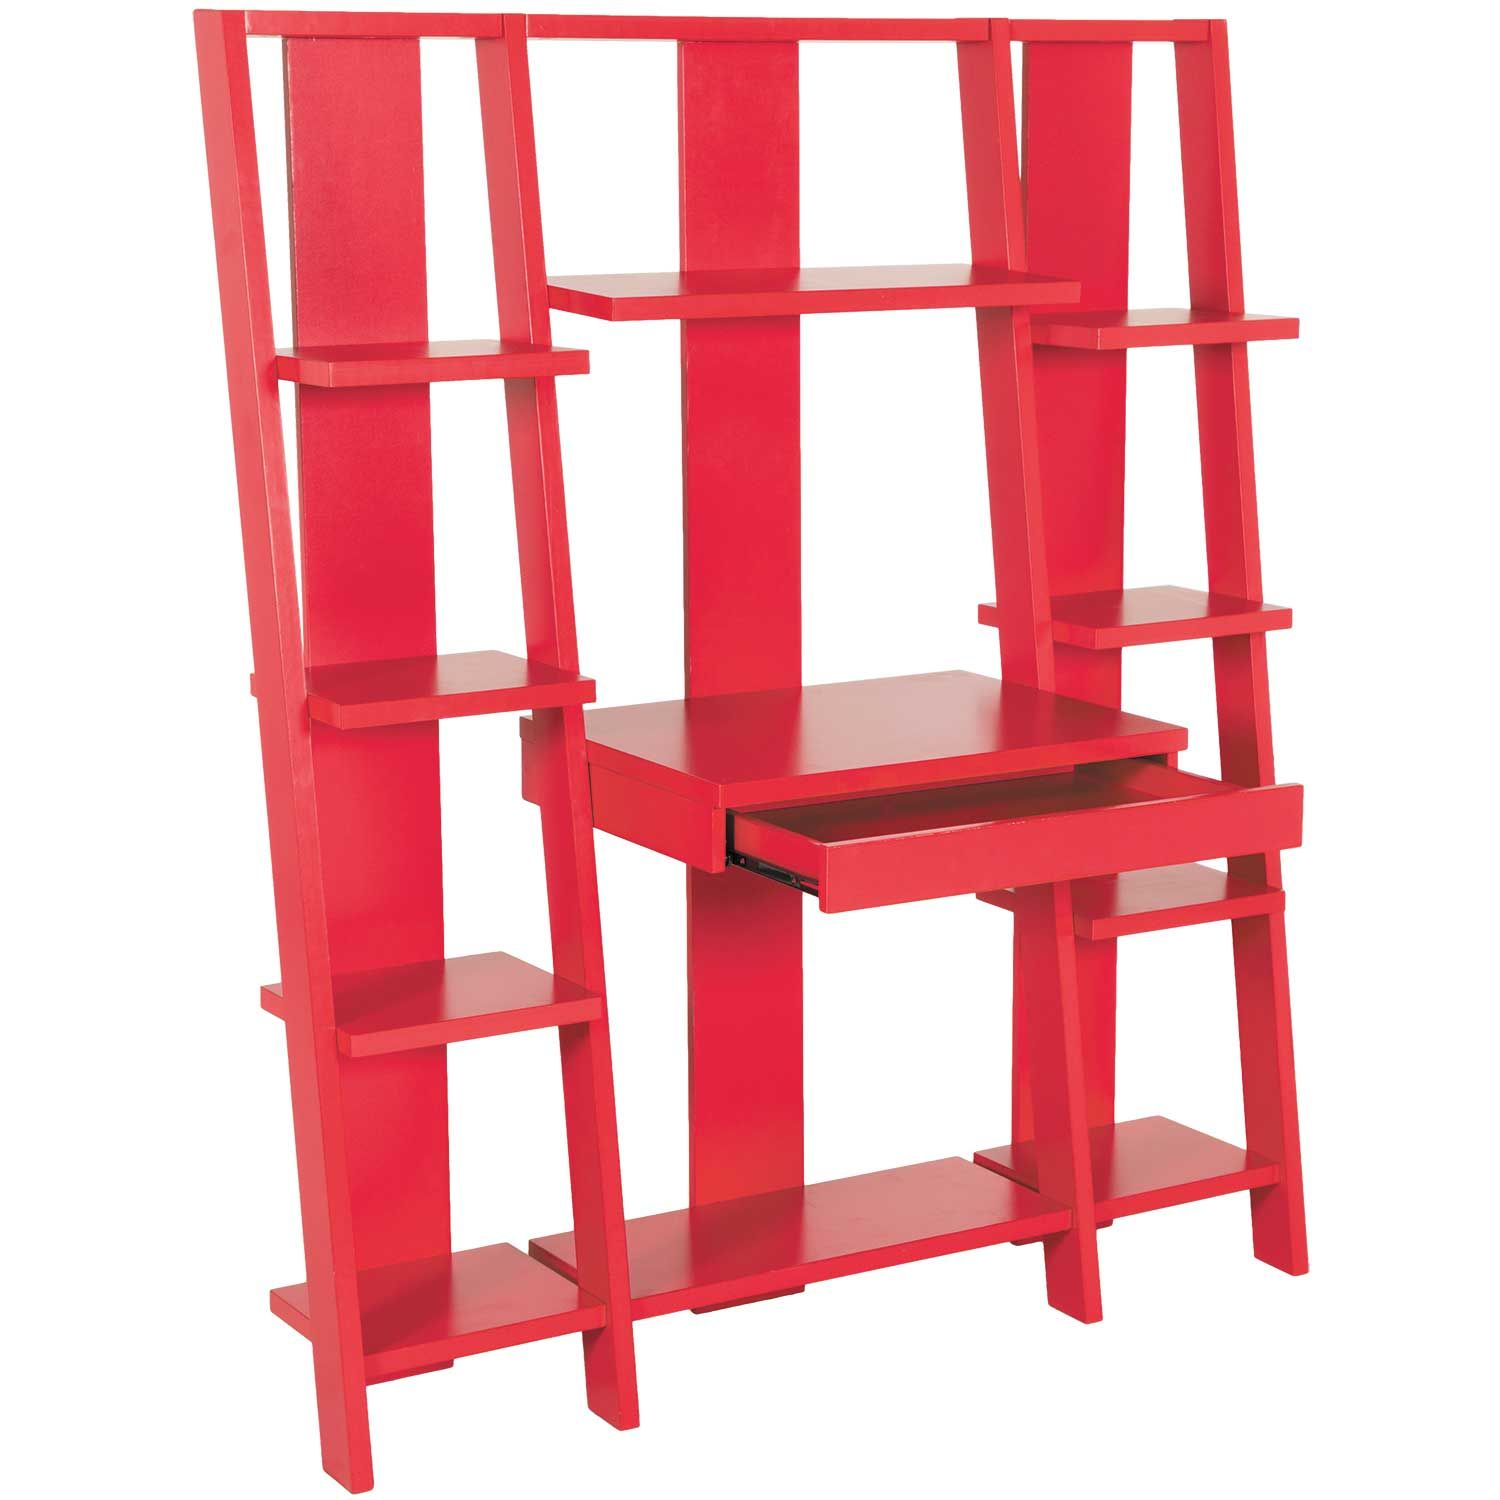 Tiffany Red Ladder Desk and Bookcase